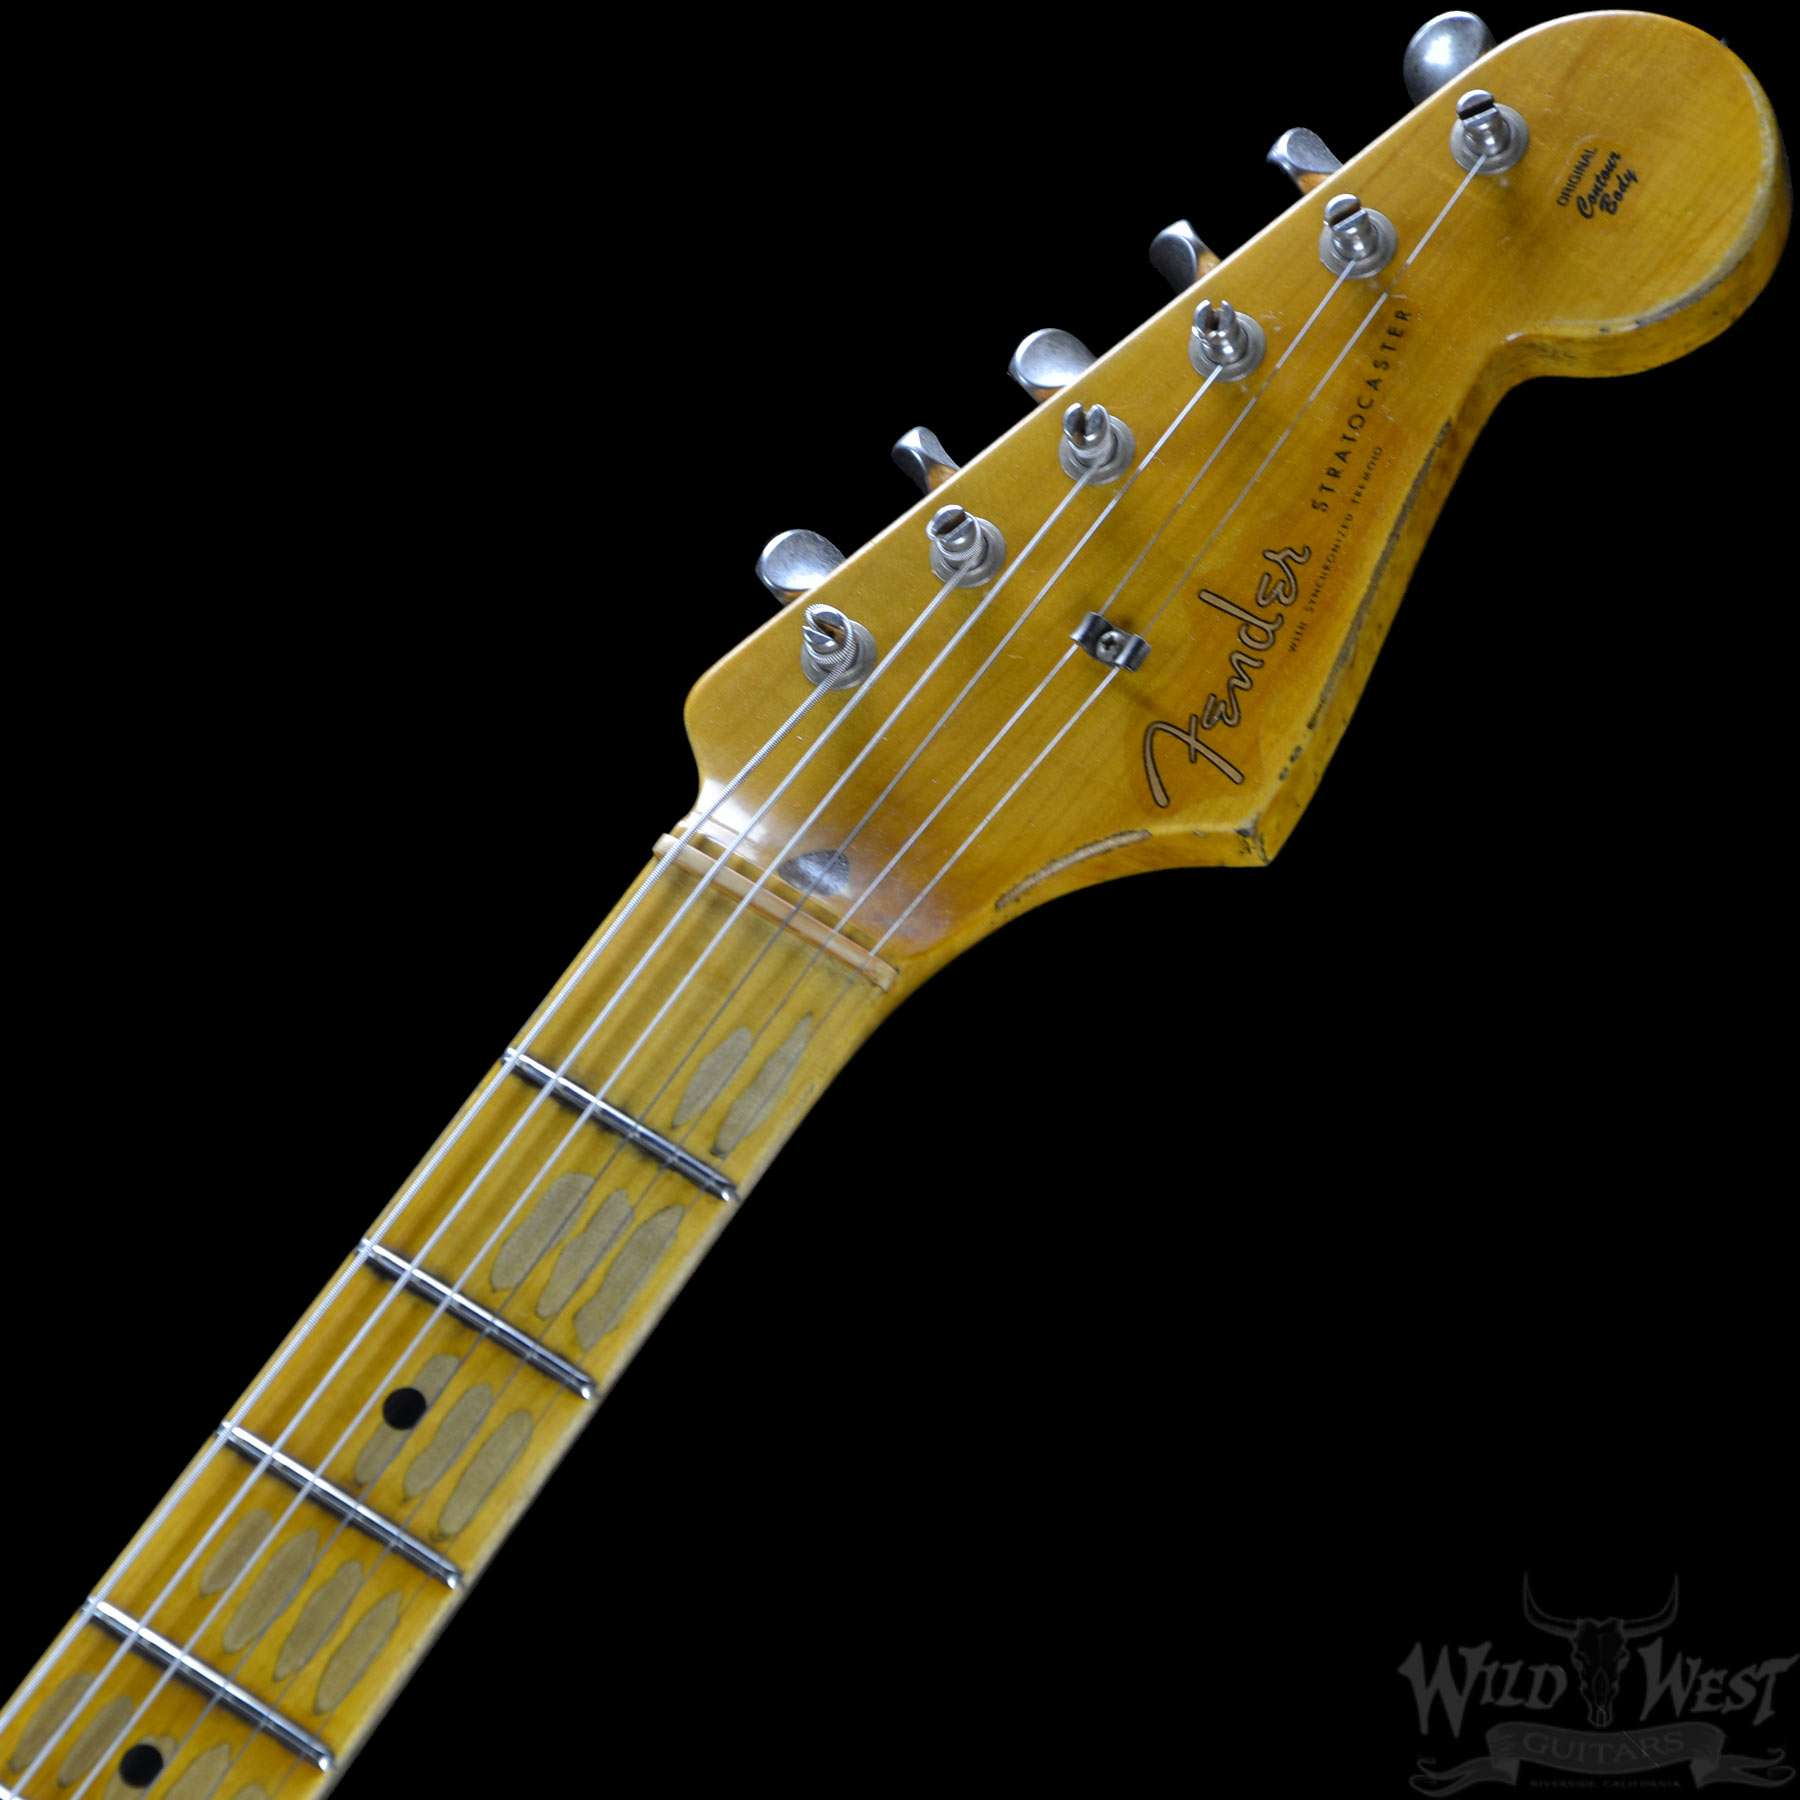 Fender 1956 Stratocaster Heavy Relic AA Flame Maple Neck Vintage